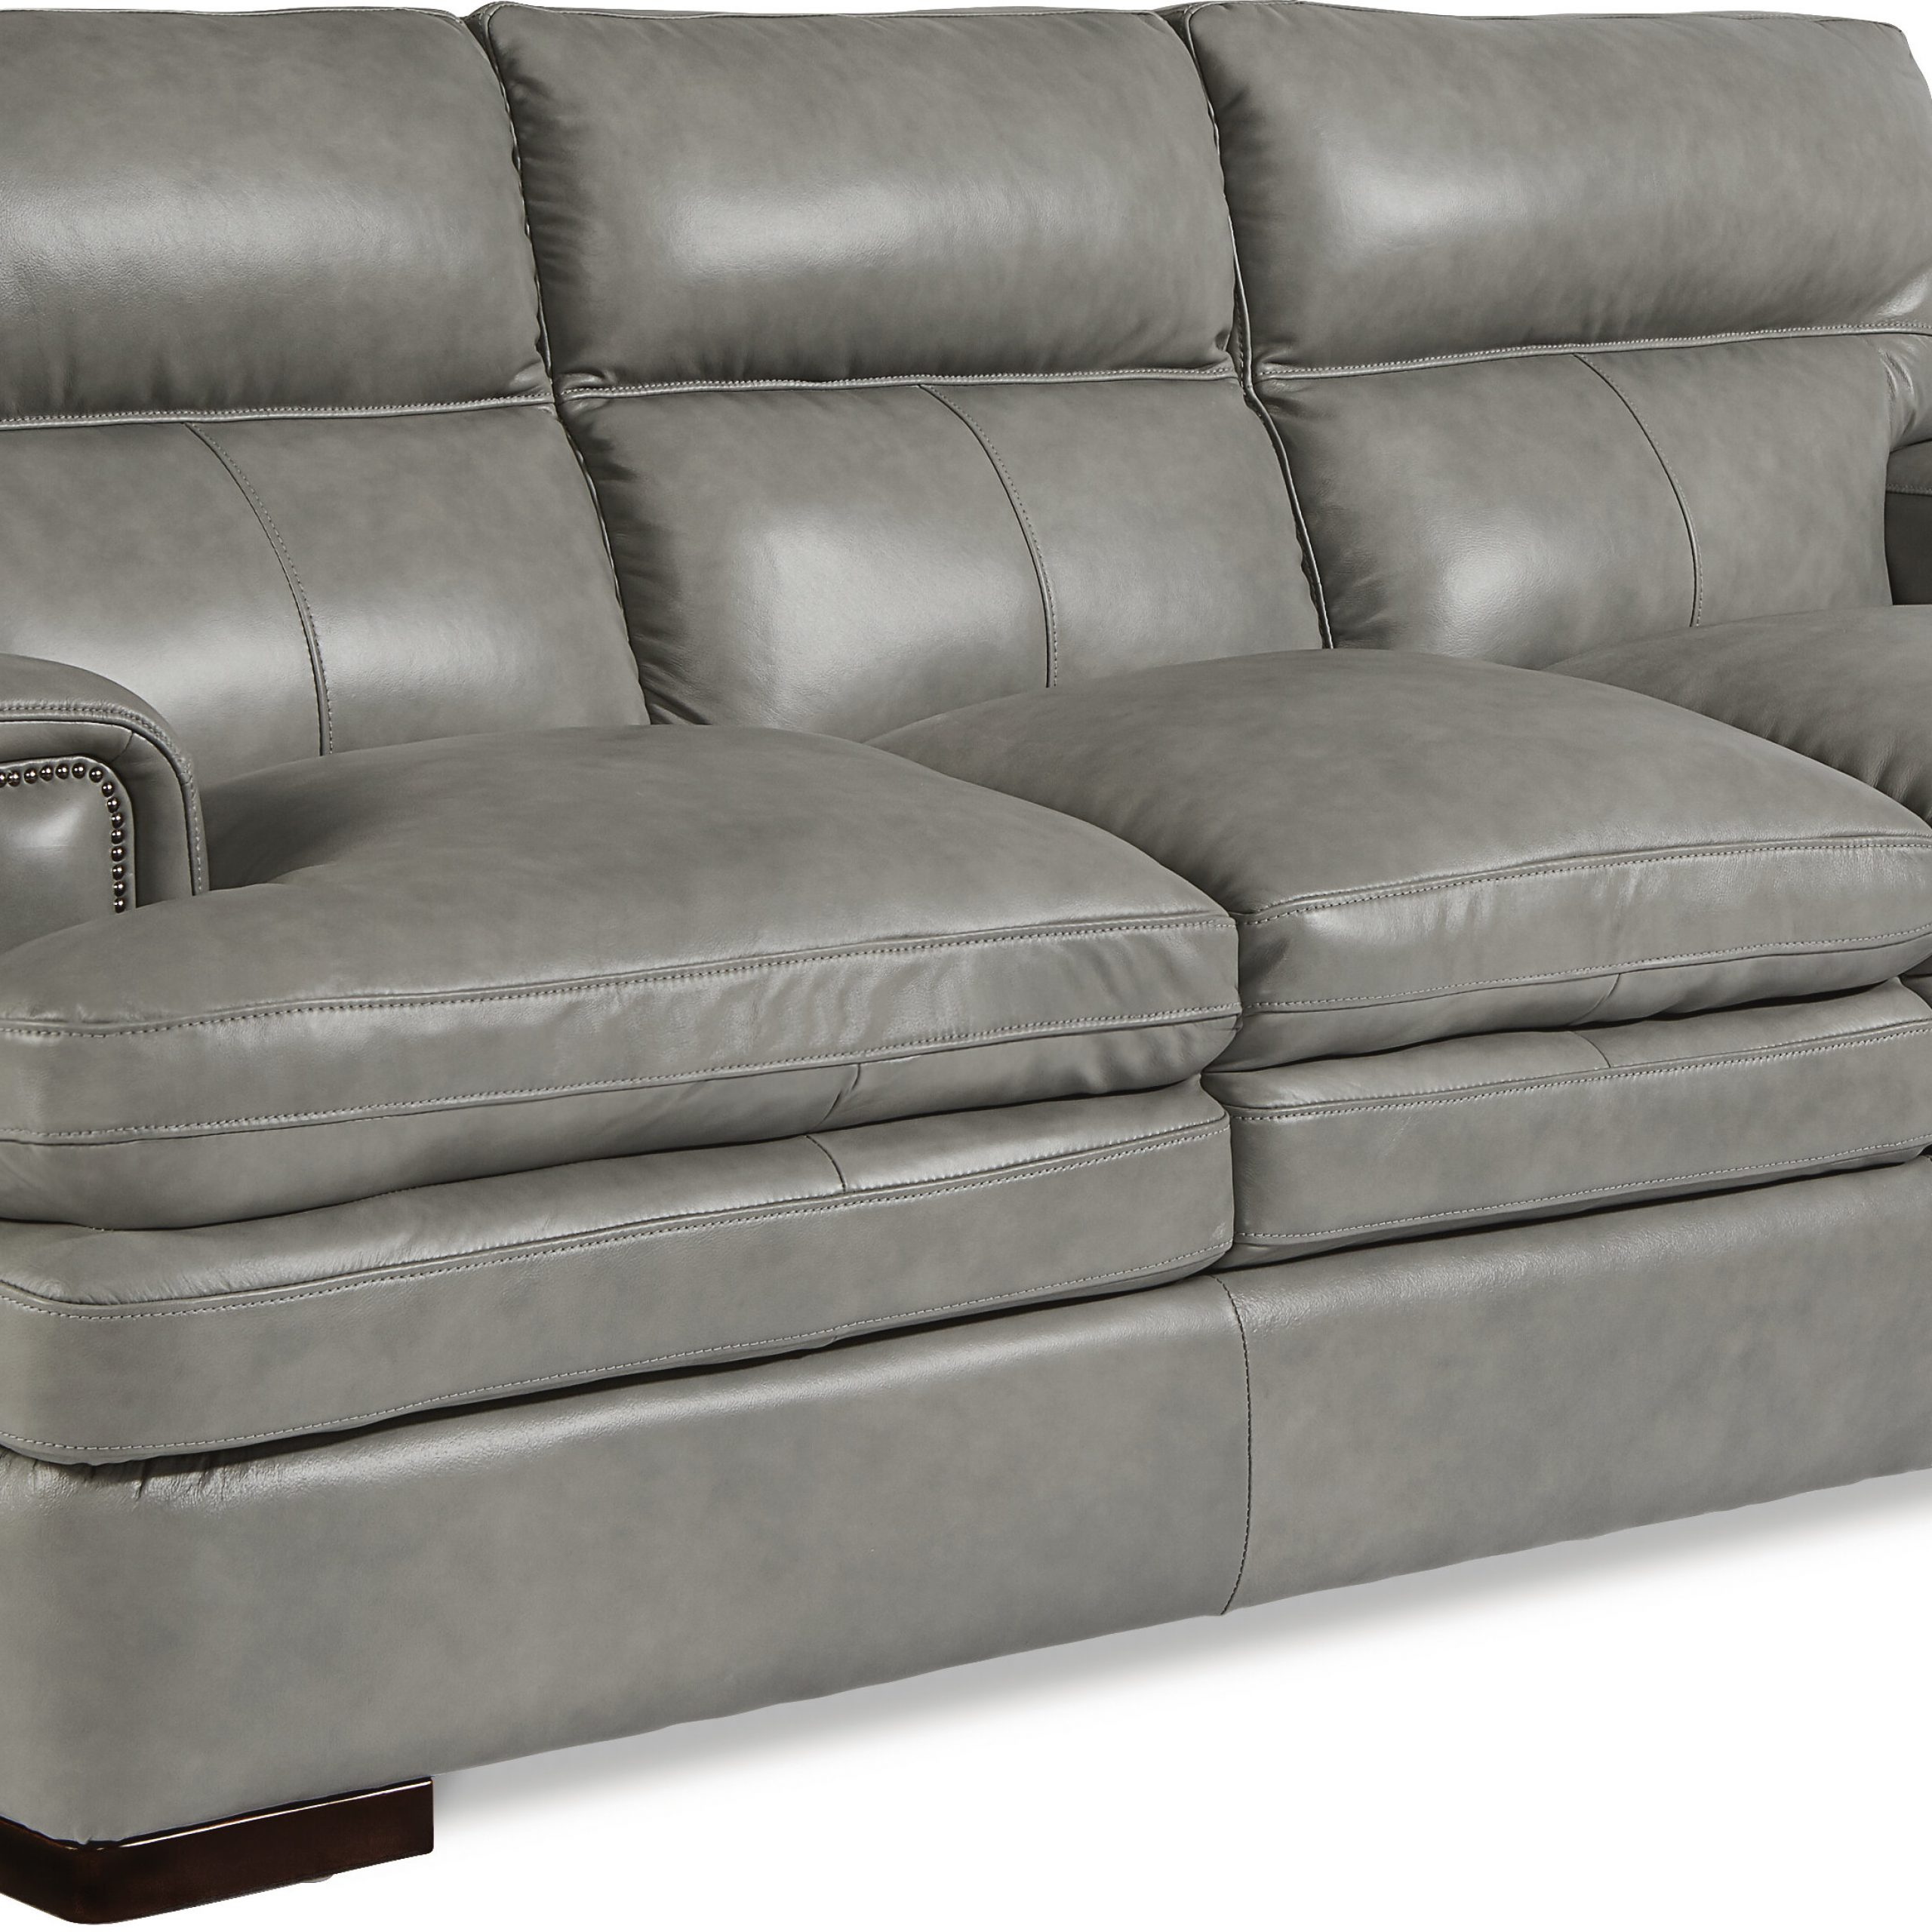 Leather Lazy Boy Sofa Leather Sofas Fayetteville Nc Pertaining To Lazy Sofa Chairs (View 5 of 15)